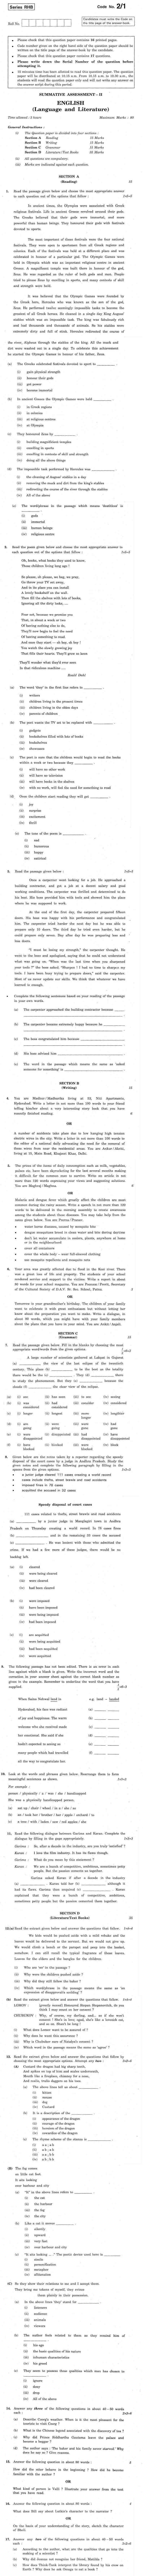 CBSE Class X Previous Year Question Papers 2011 English Lang. & Literature